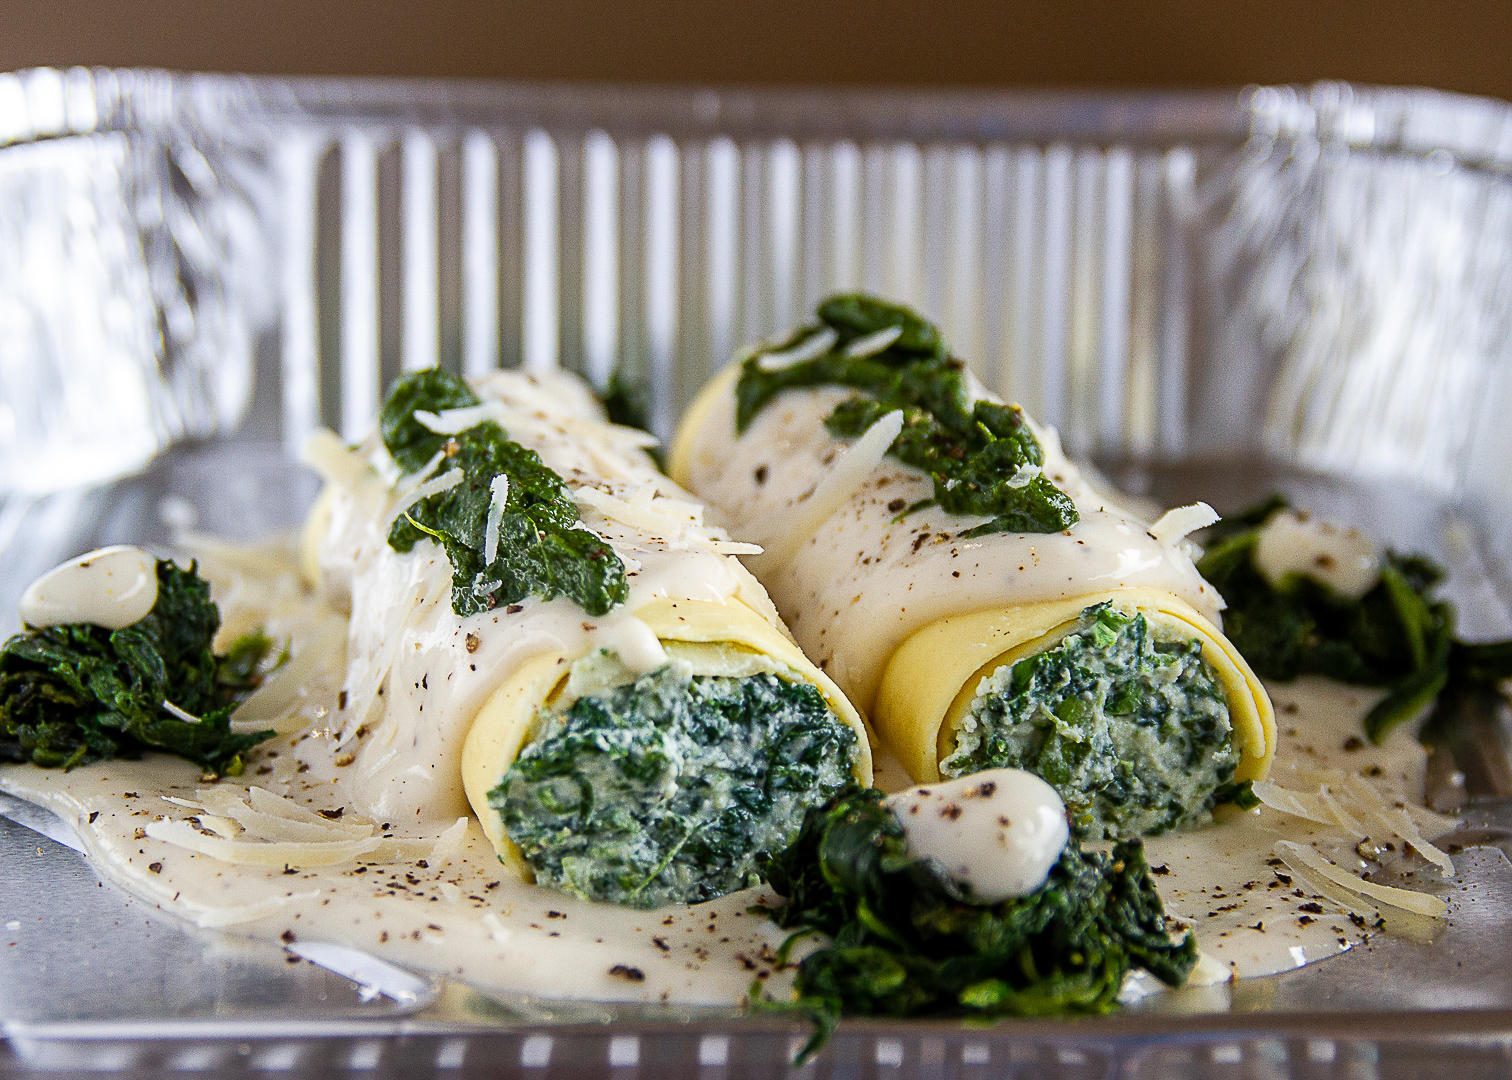 Delicious Food Photography Maidenhead | Rolled Pasta stuffed with Spinach